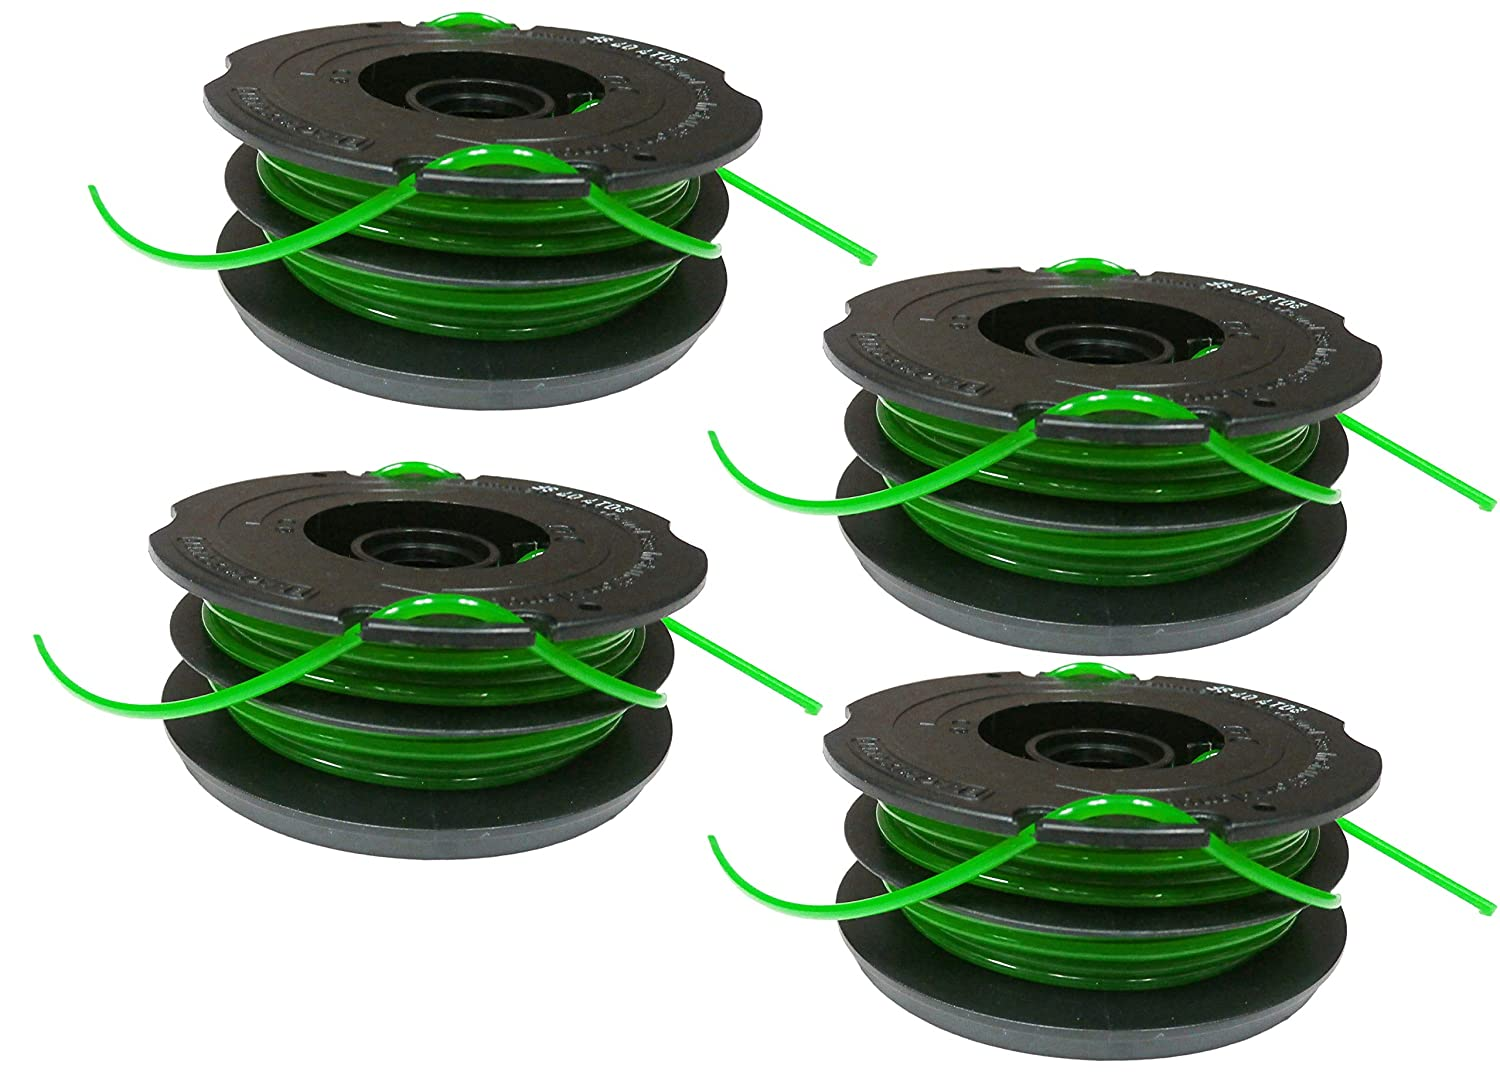 Black & Decker DF-080 .080-inch dual spool line GH1000 GH1100 GH2000 (4 Pack)